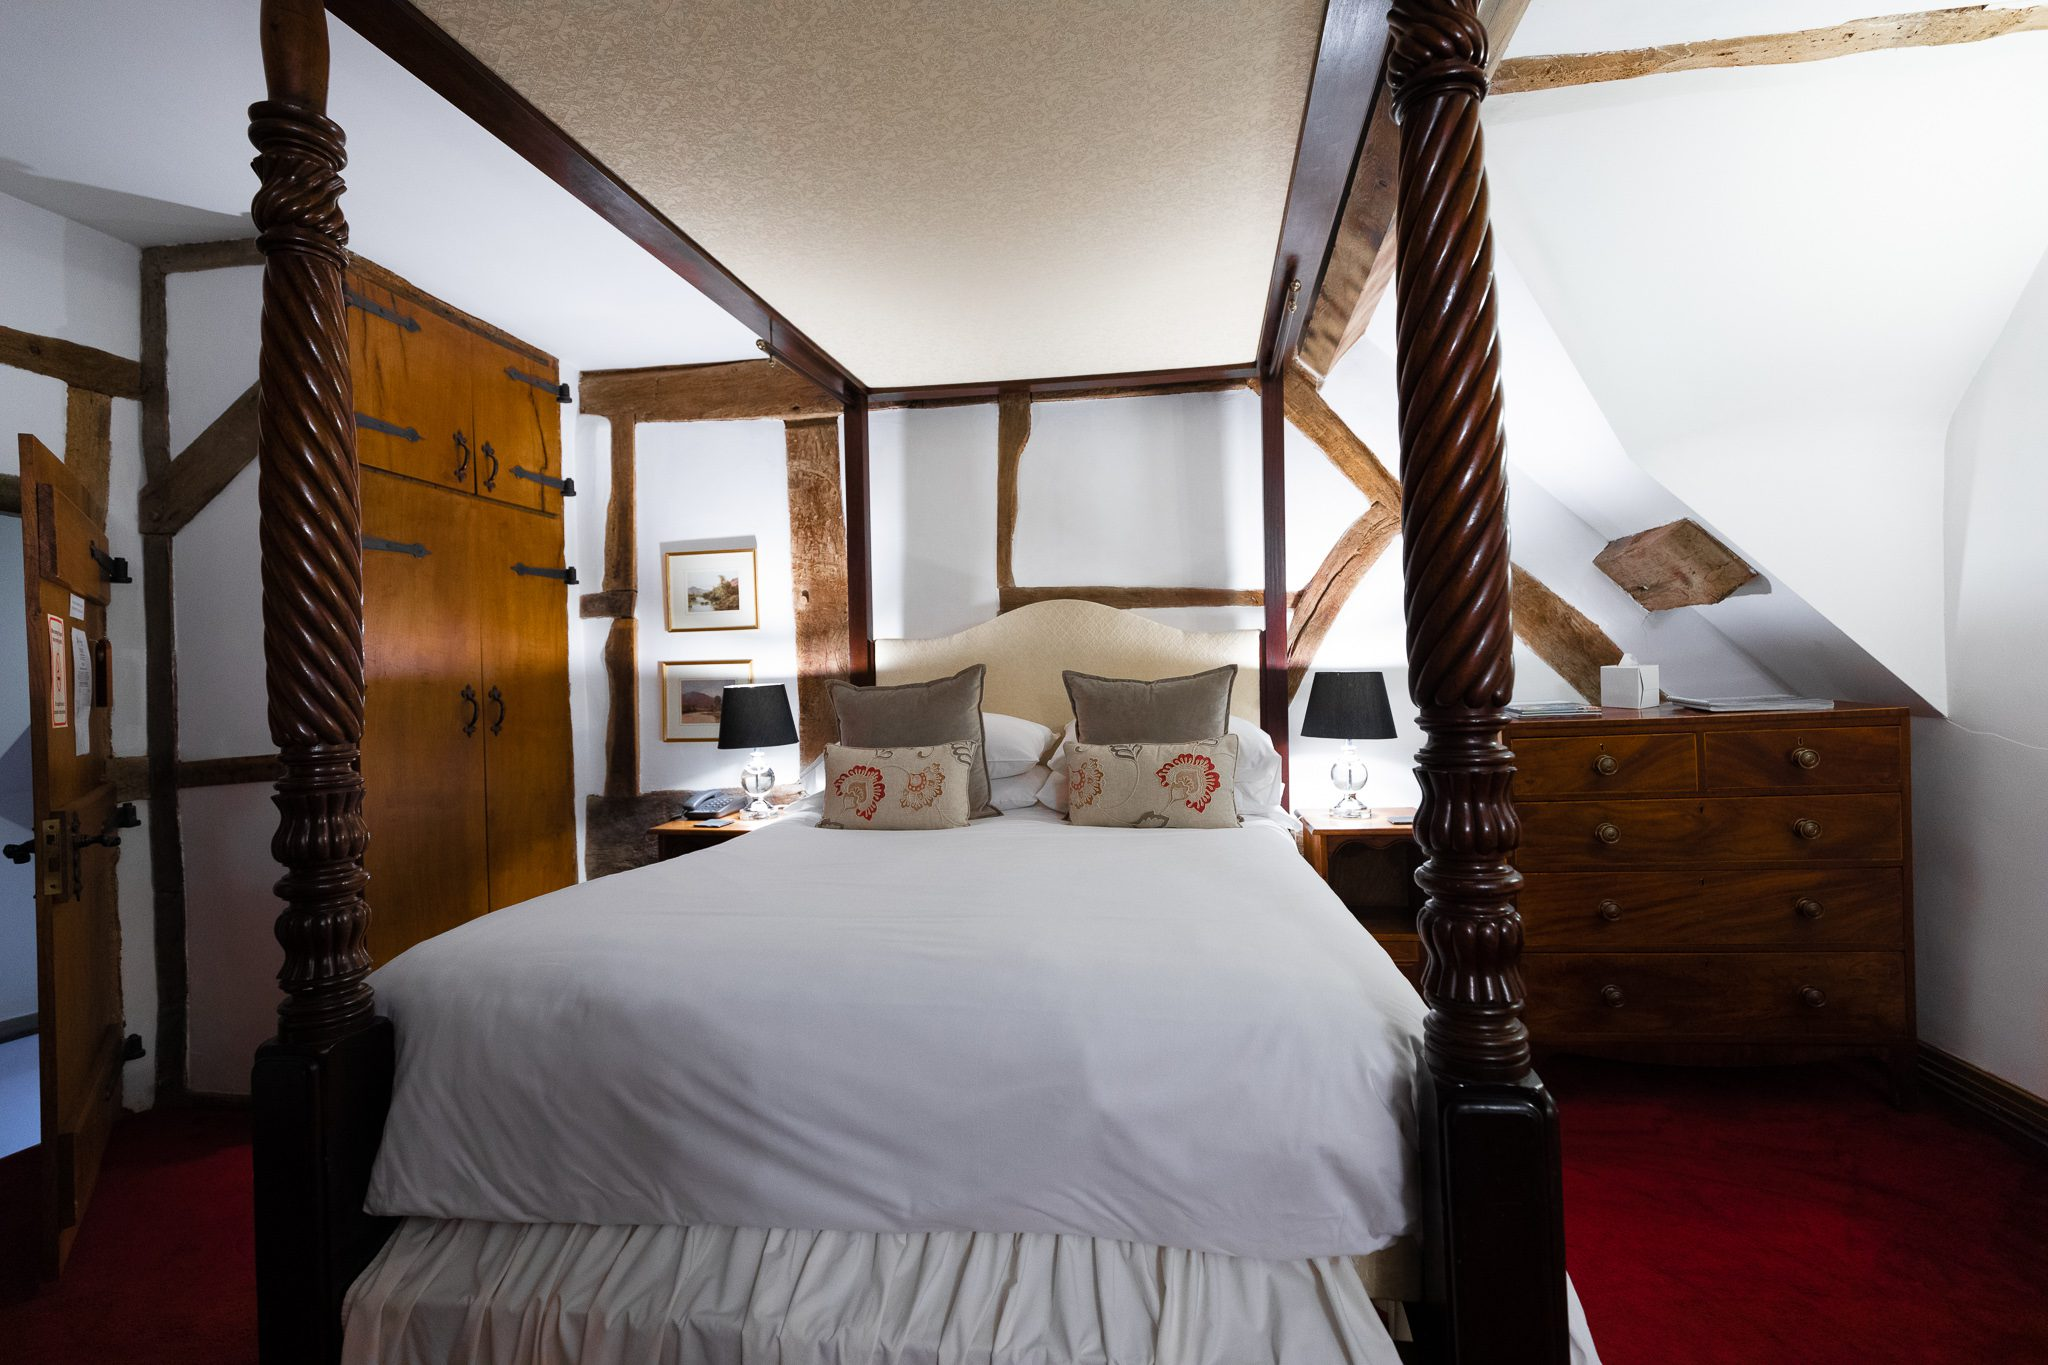 Image of a bed in the Howard Room at the West Arms, a country inn based in North Wales.